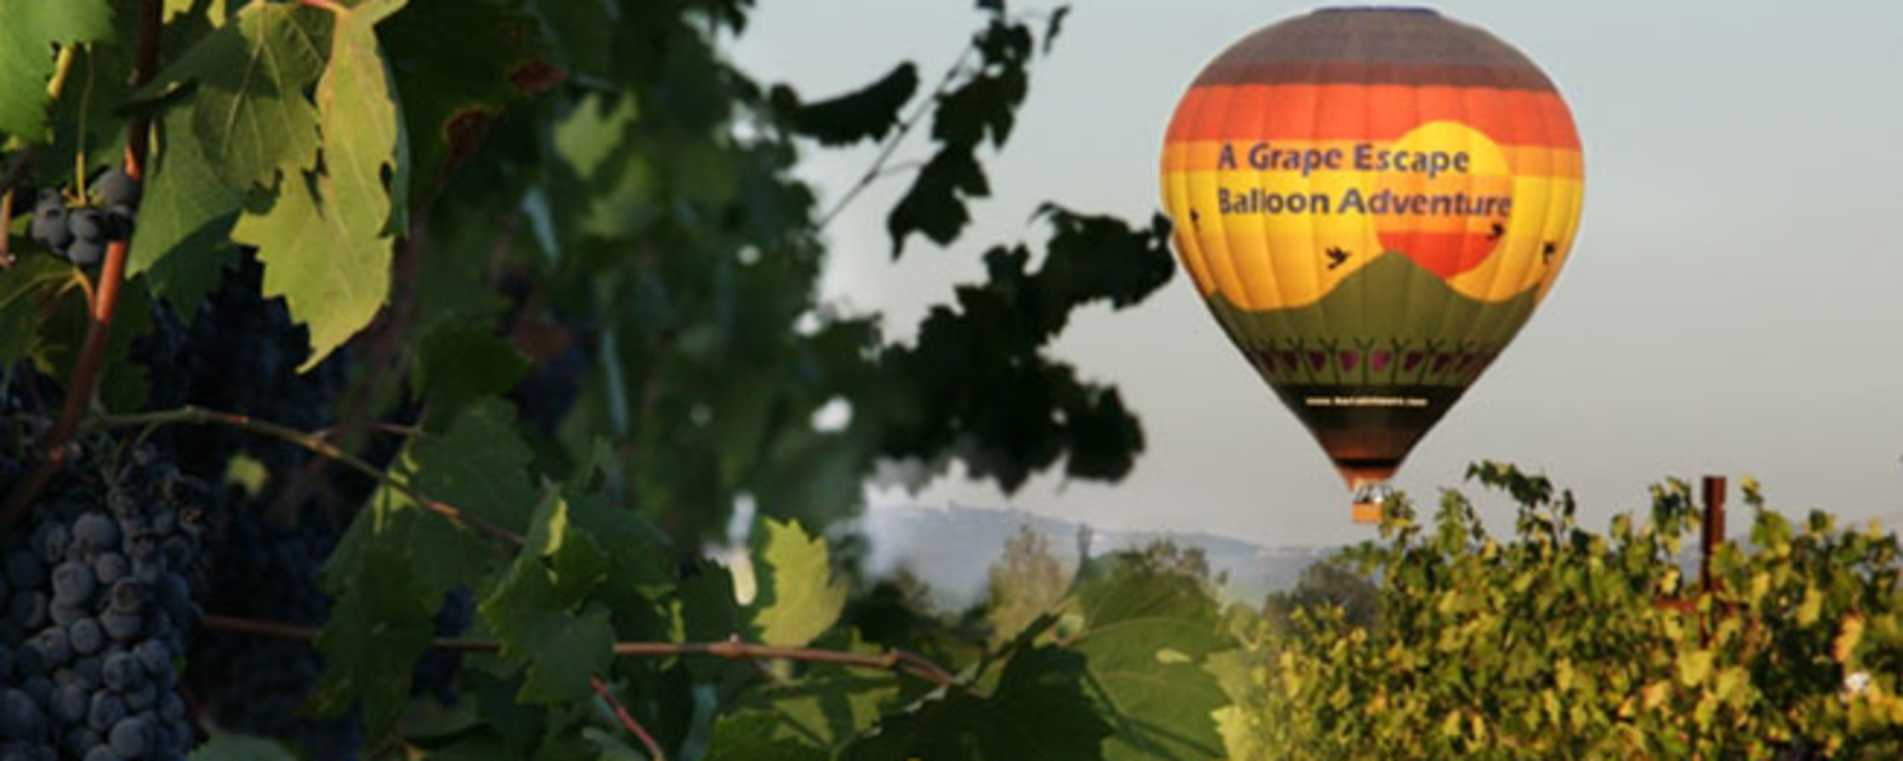 Grape Escape Balloon Adventure